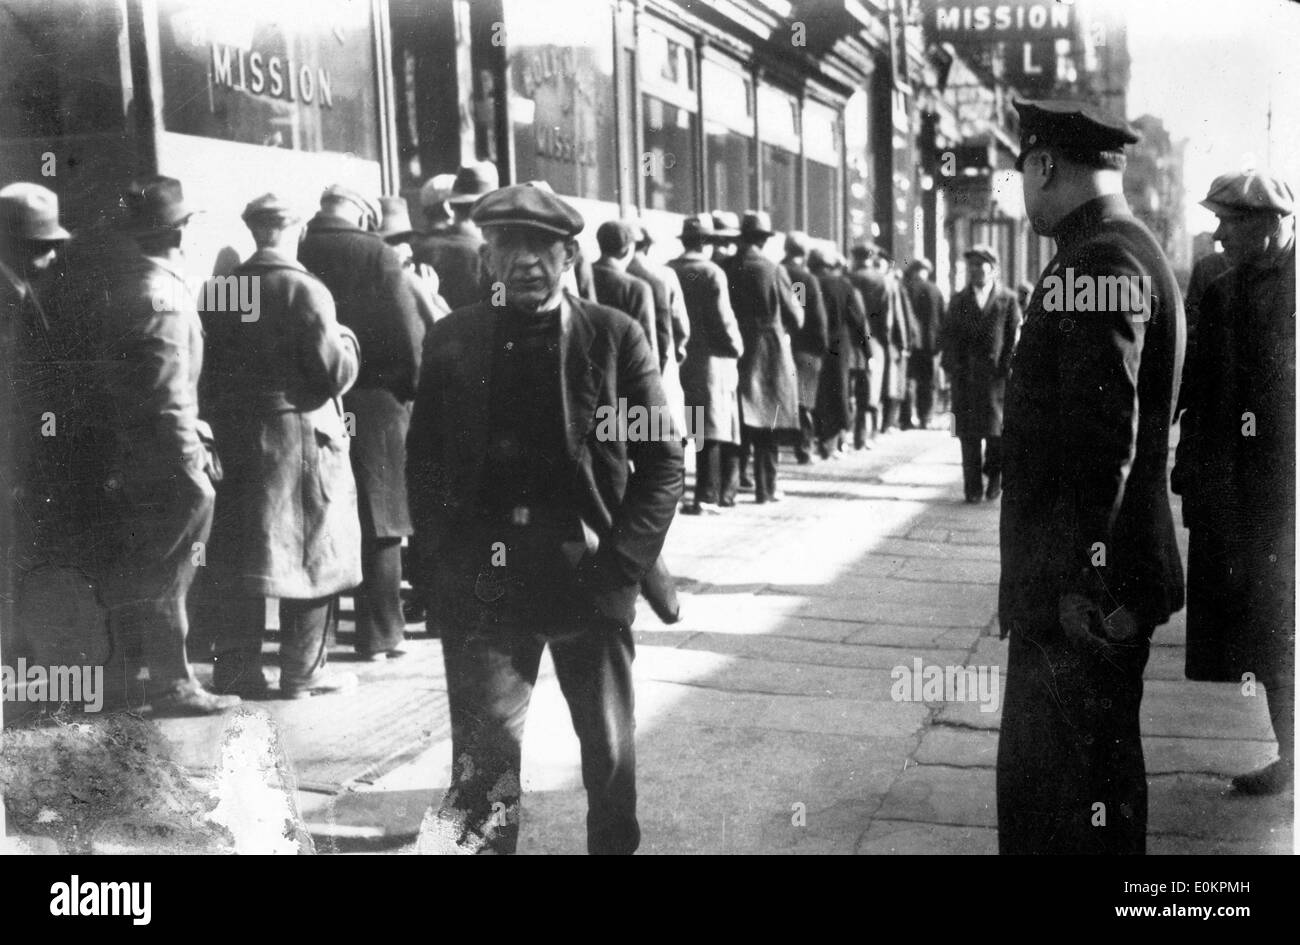 great depression stock photos great depression stock images alamy people awaiting food during the great depression stock image